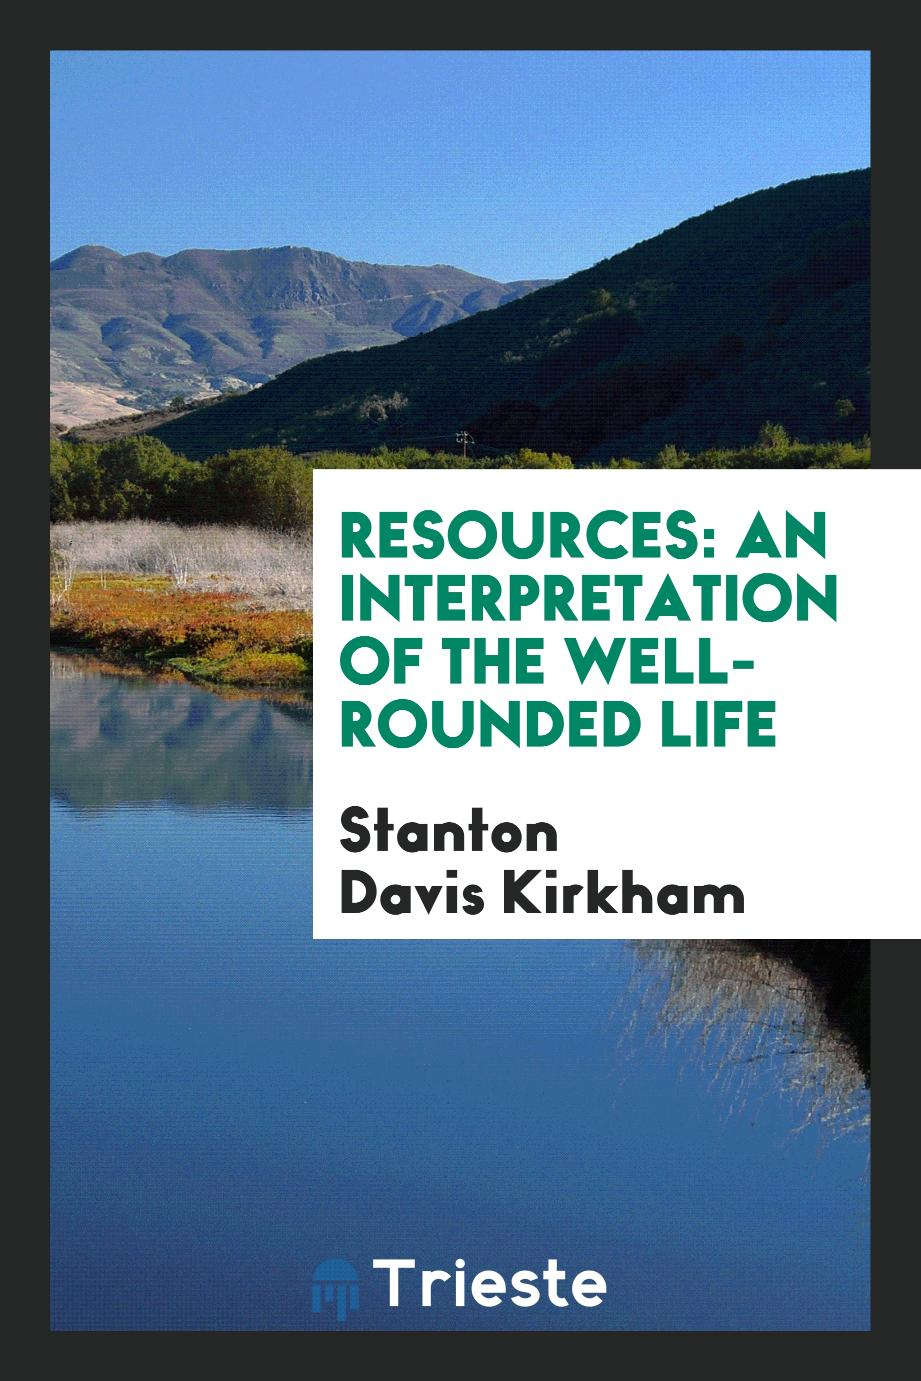 Resources: an interpretation of the well-rounded life